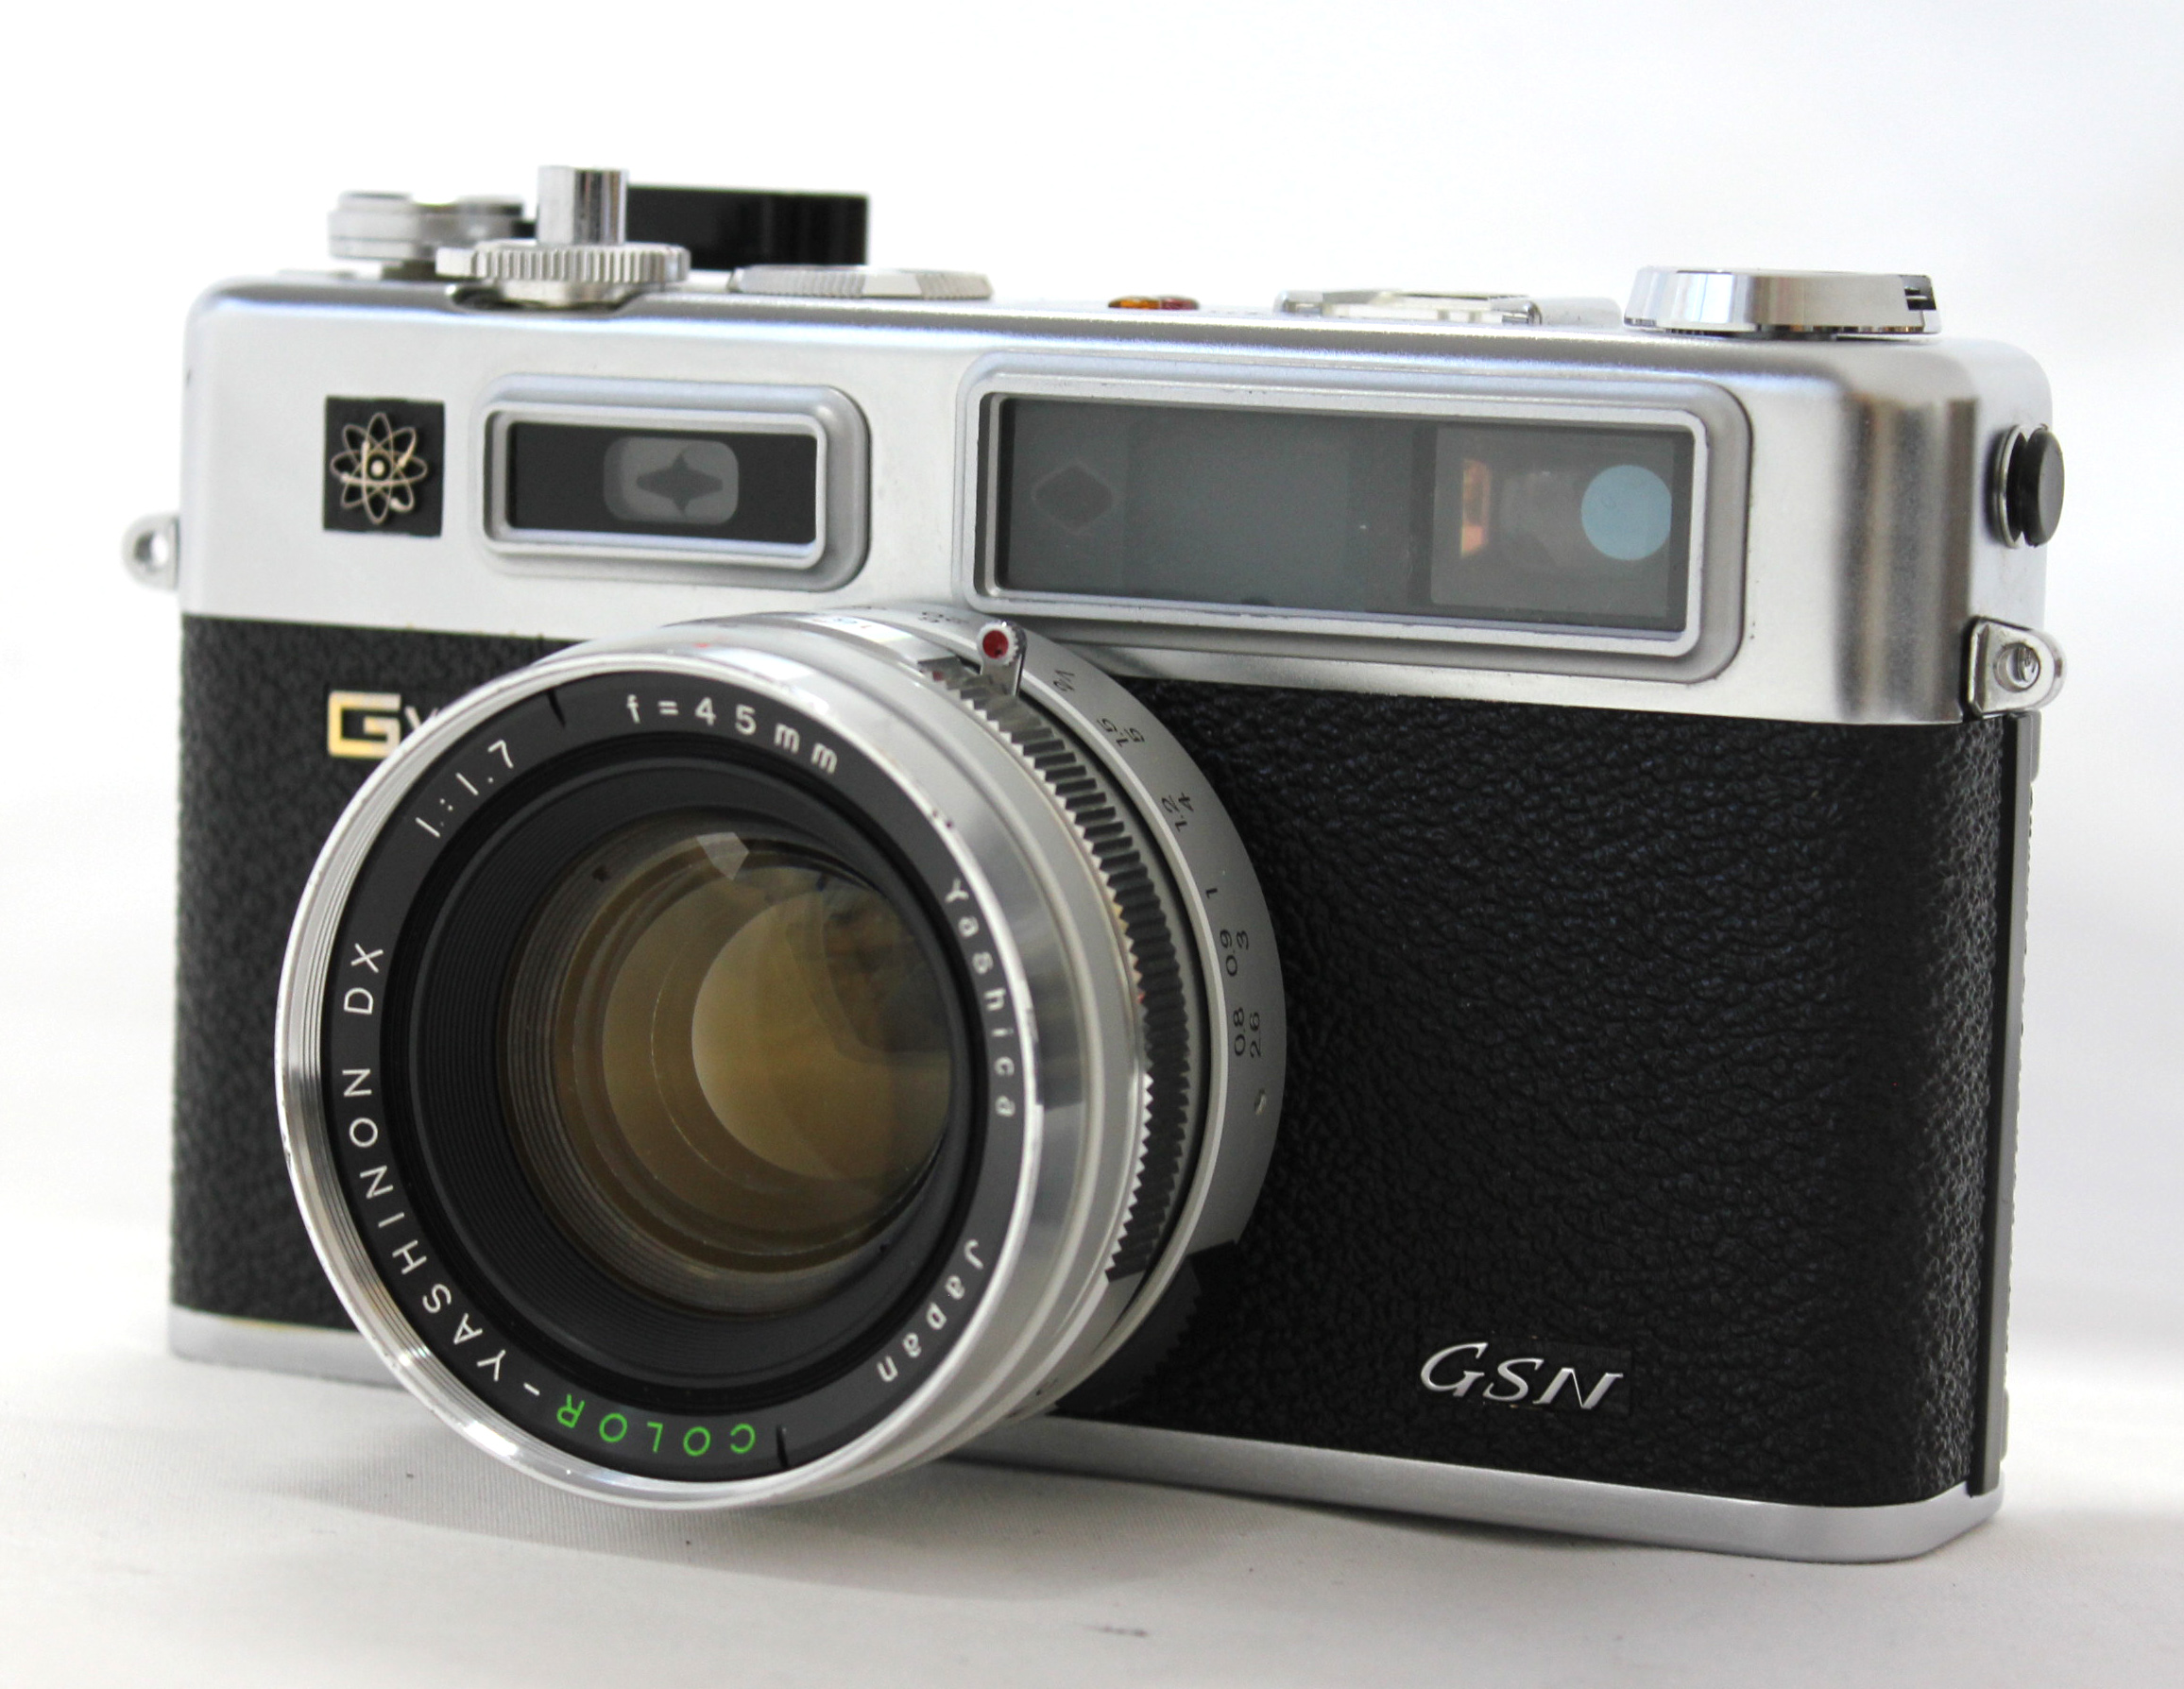 Japan Used Camera Shop | [Near Mint] Yashica Electro 35 GSN Rangefinder Film Camera 45mm F/1.7 from Japan